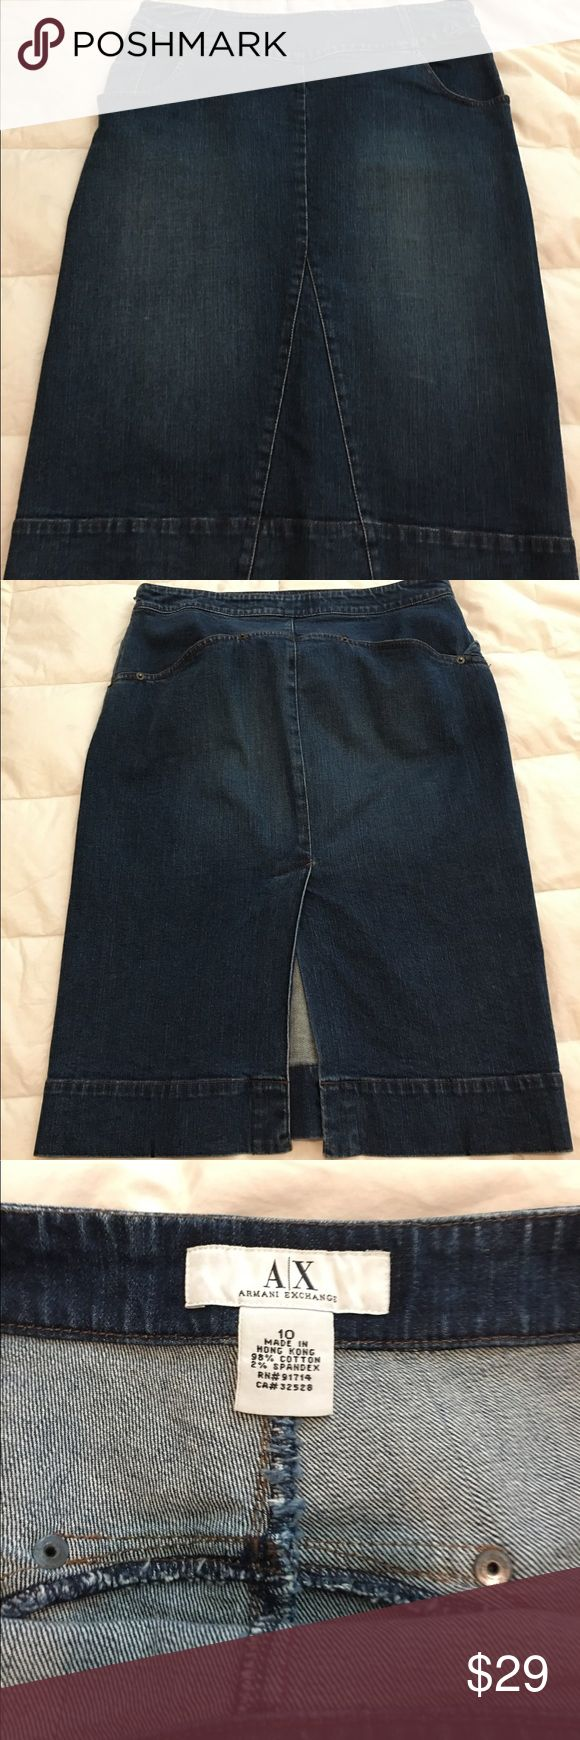 Armani Exchange stretch jean skirt Dark denim with some stretch, midi length, with pockets front and back. This is an awesome skirt that is so figure flattering and it's Armani! A/X Armani Exchange Skirts Midi